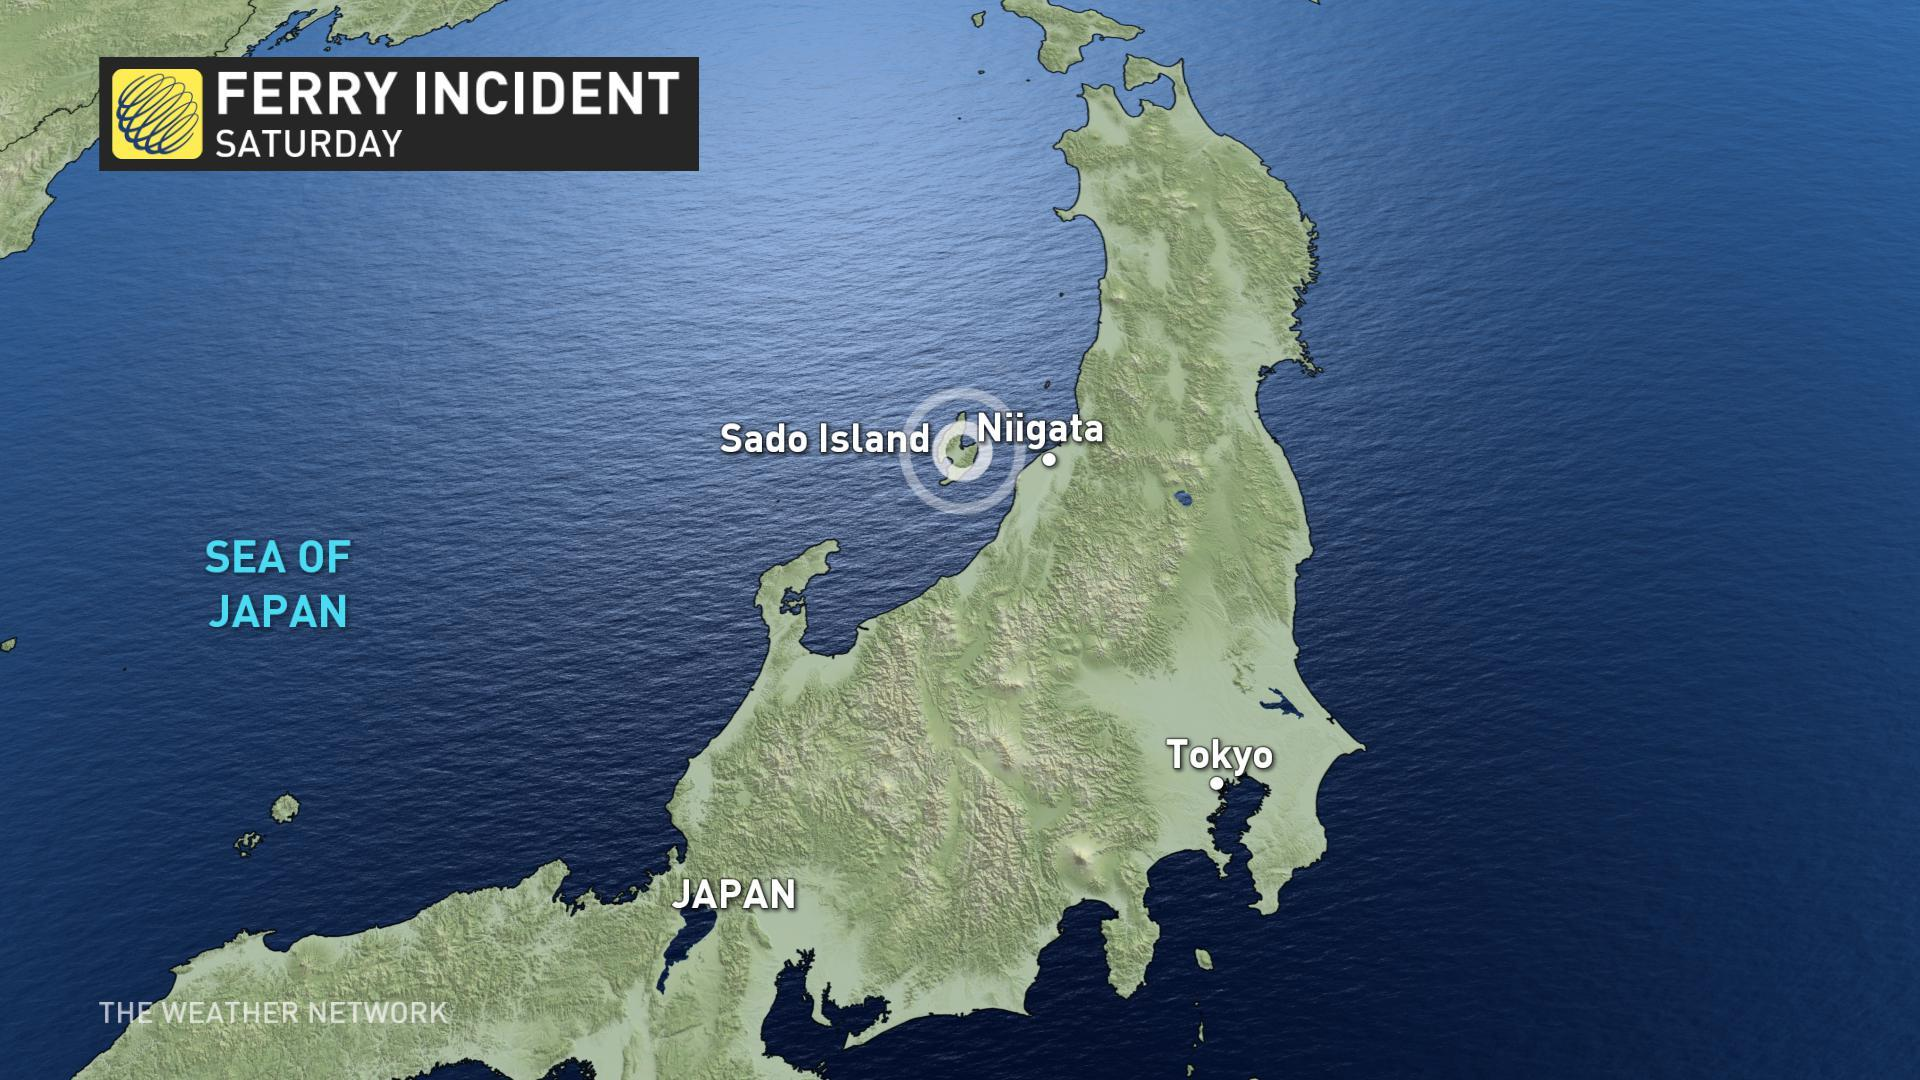 Dozens injured after ferry collides with marine animal off Japanese island